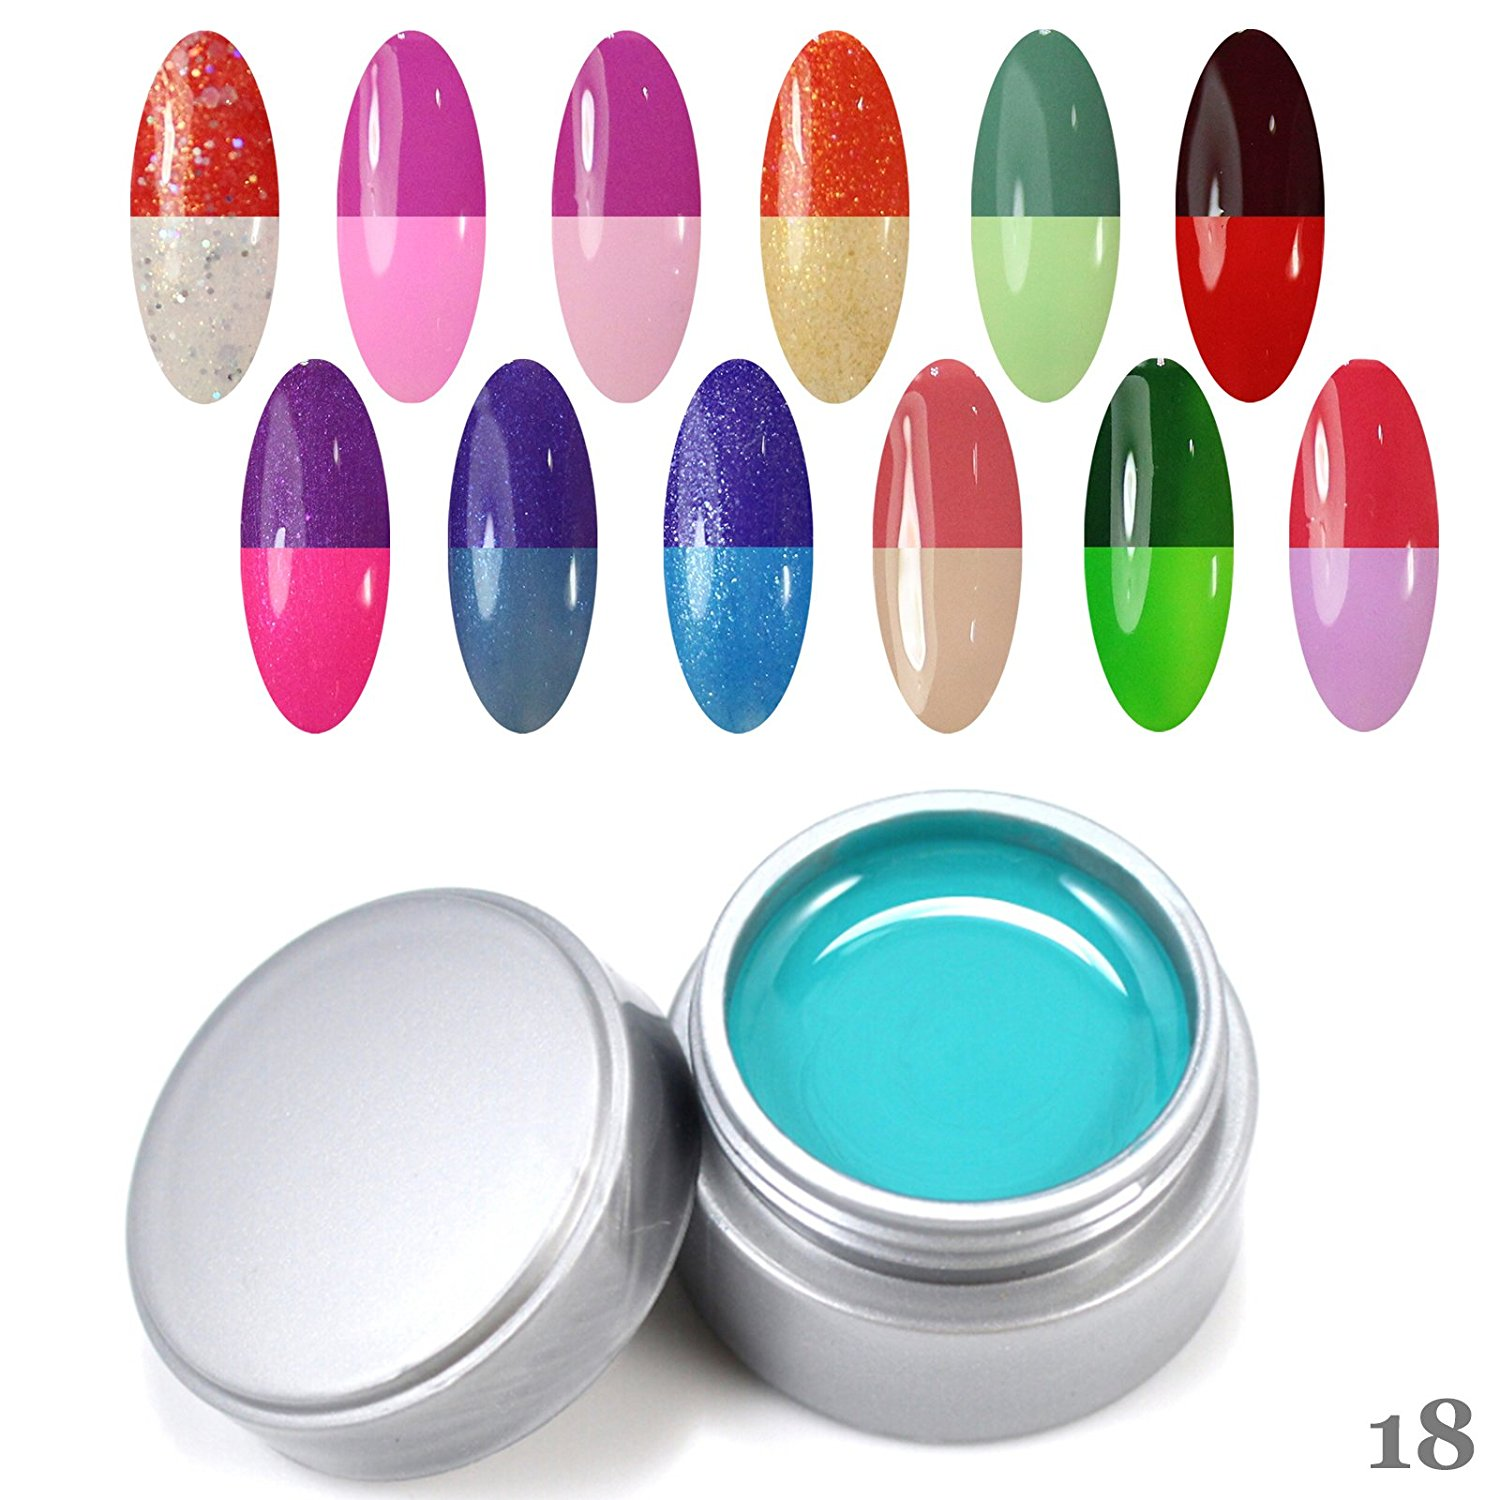 Perfect Summer Fast Quick Drying 12pcs 6ml UV Gel Nails Polish Temperature Changing Colors Chameleon Salon Artistic Painting Nails Lacquers Varnish Sets Kits Soak Off for Women #18